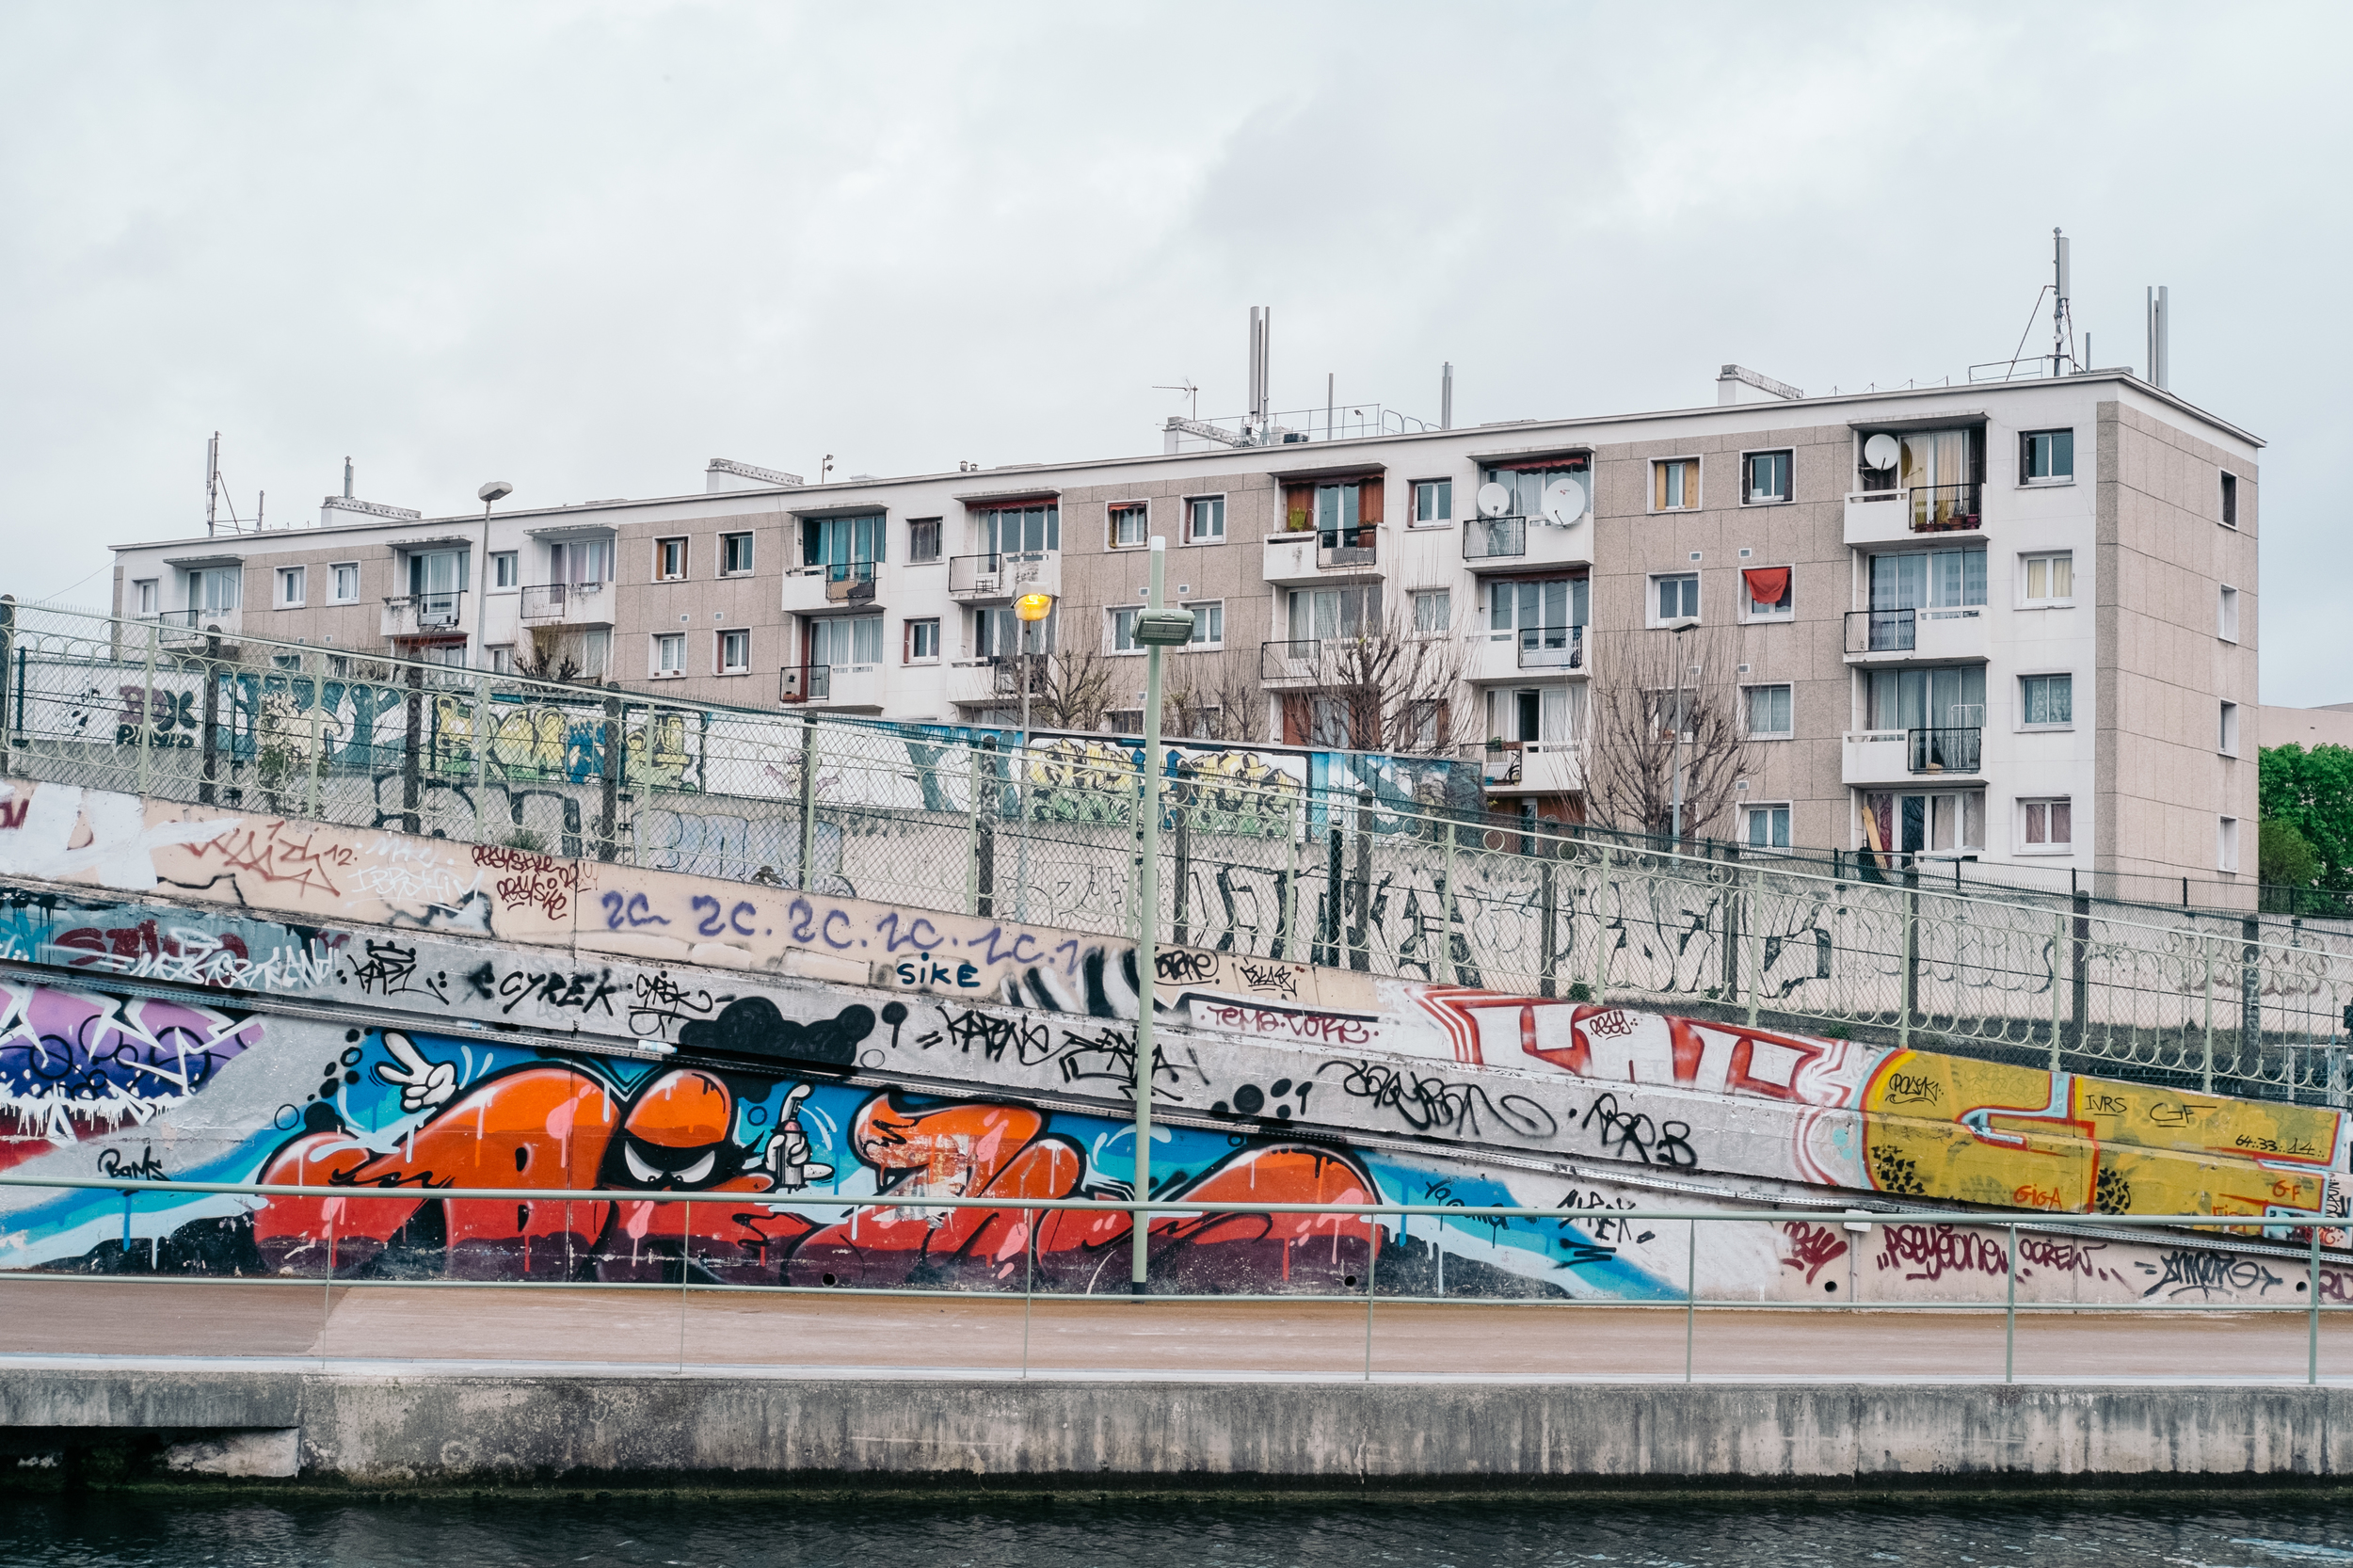 Ourcq #3